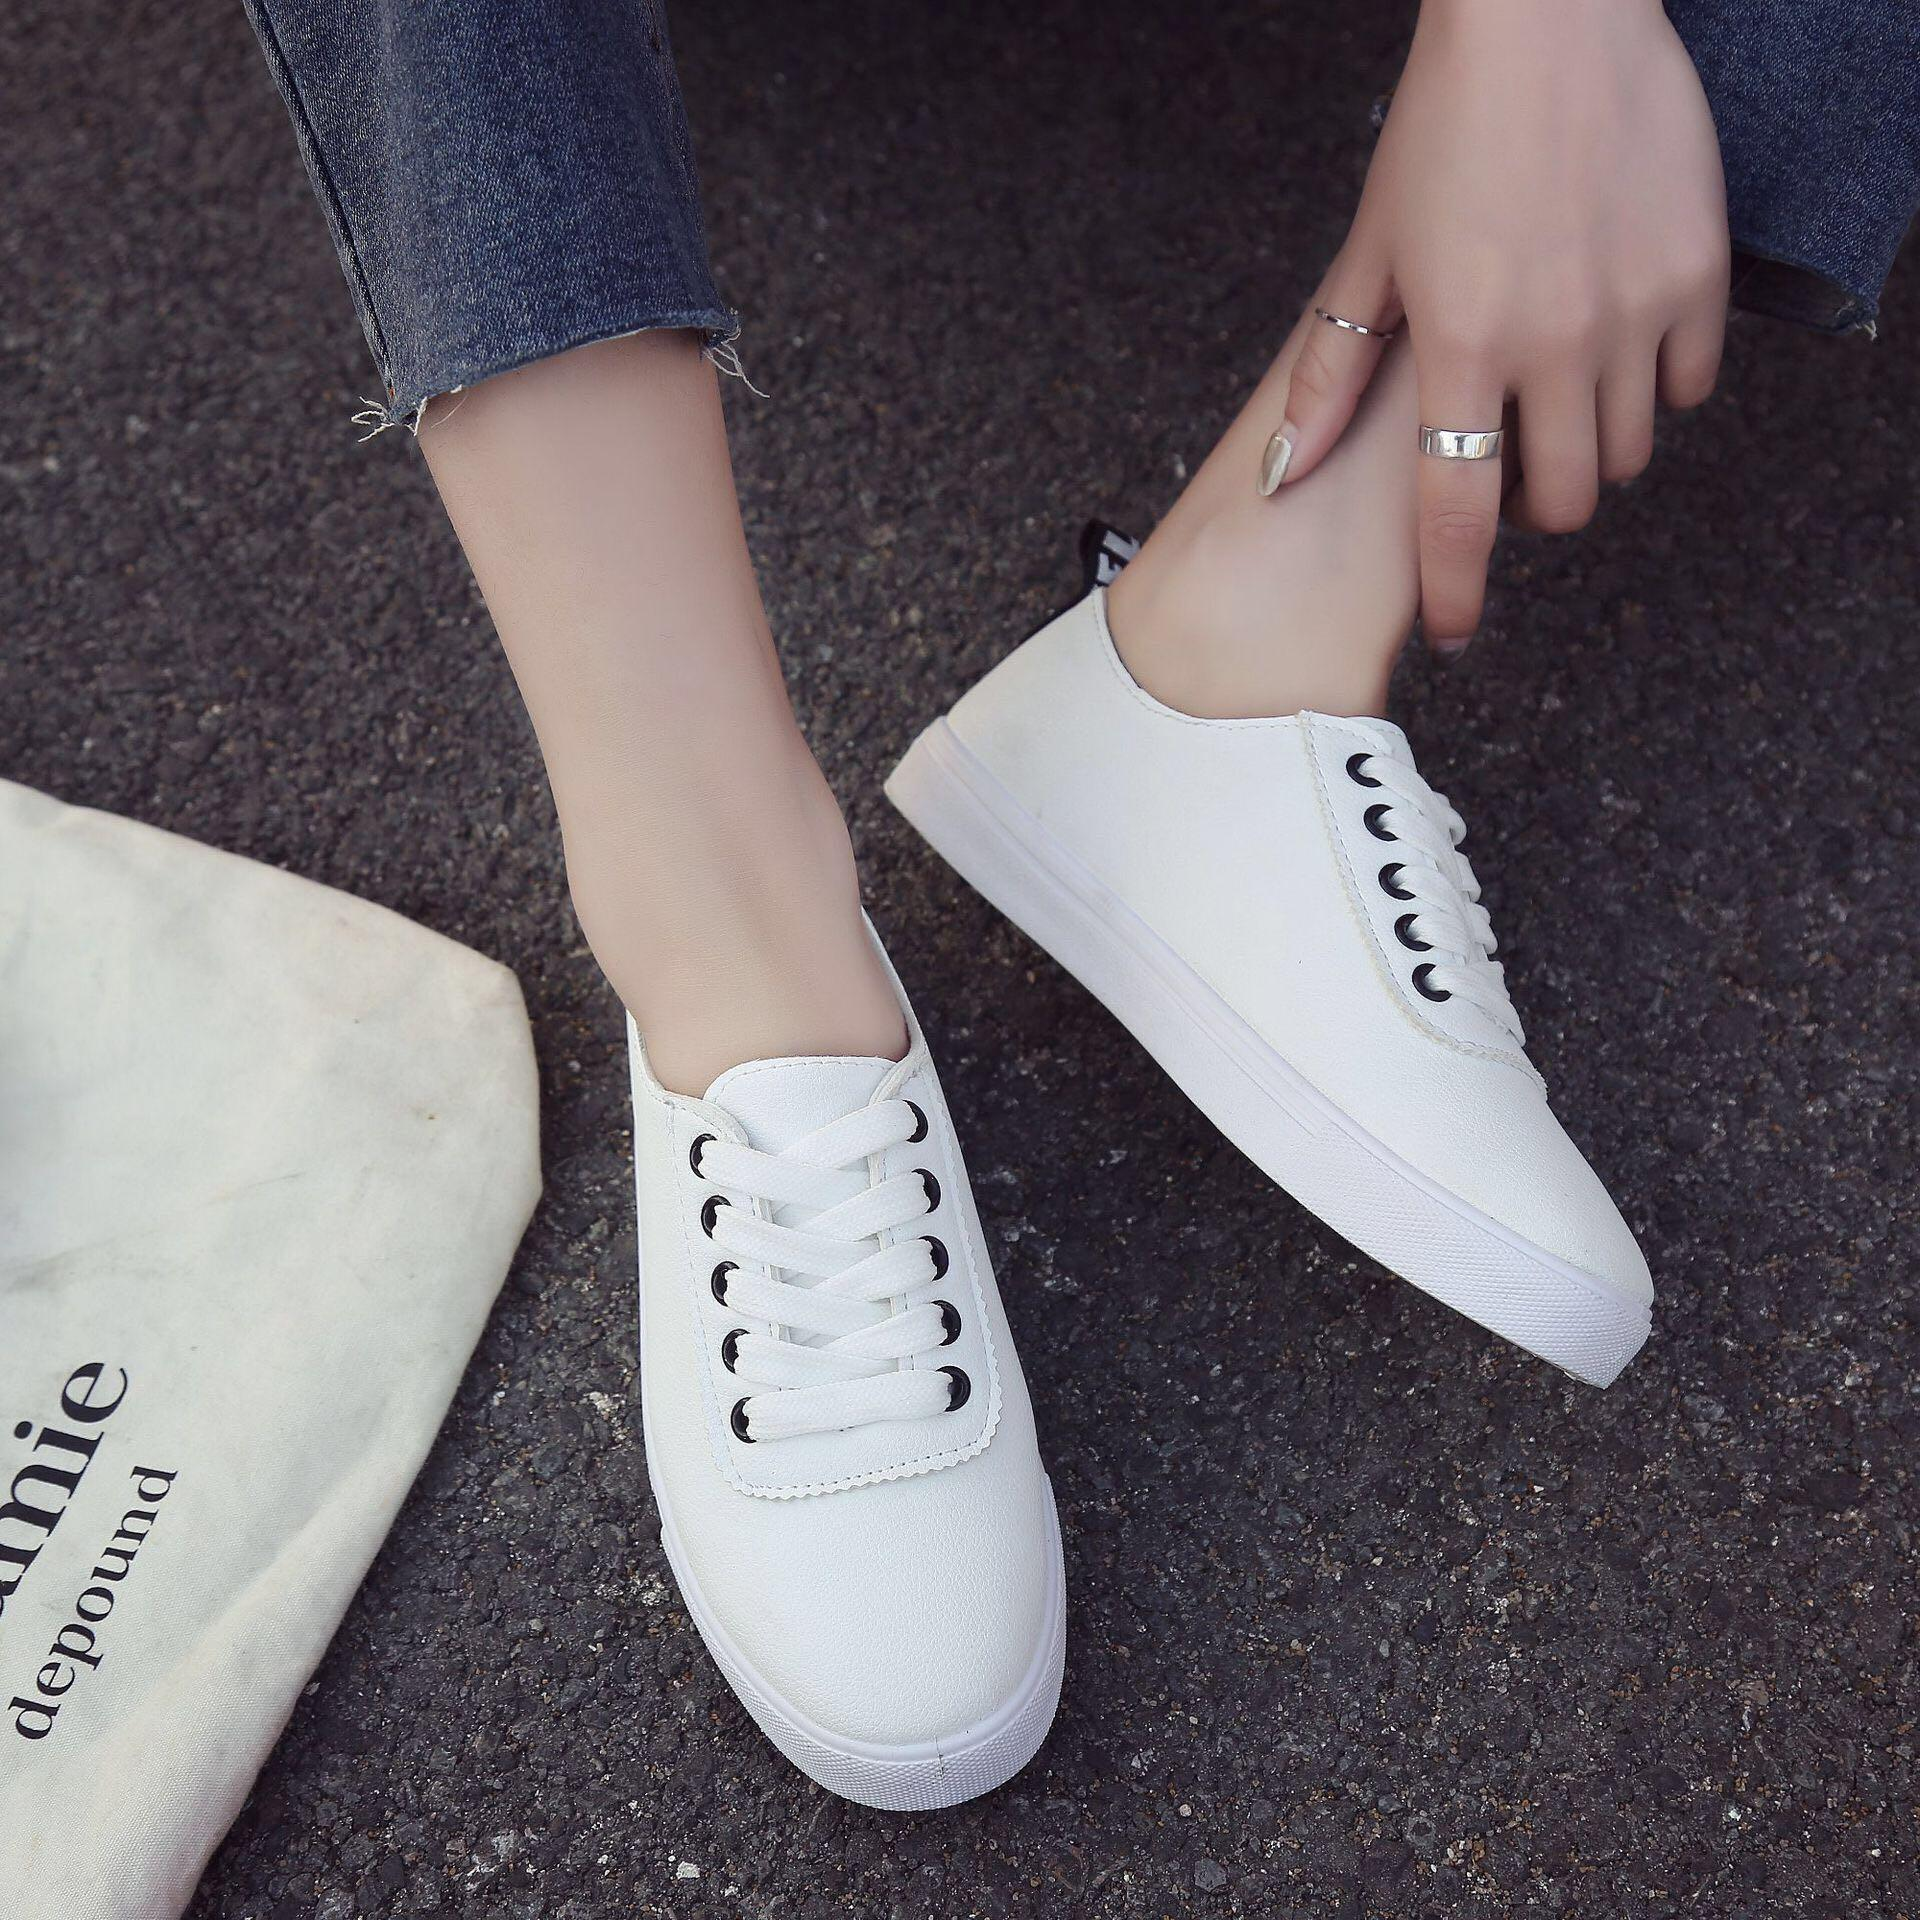 b9e42c53581 White Coloured Crossed Shoelace Tie Sneakers, Women's Fashion, Shoes ...